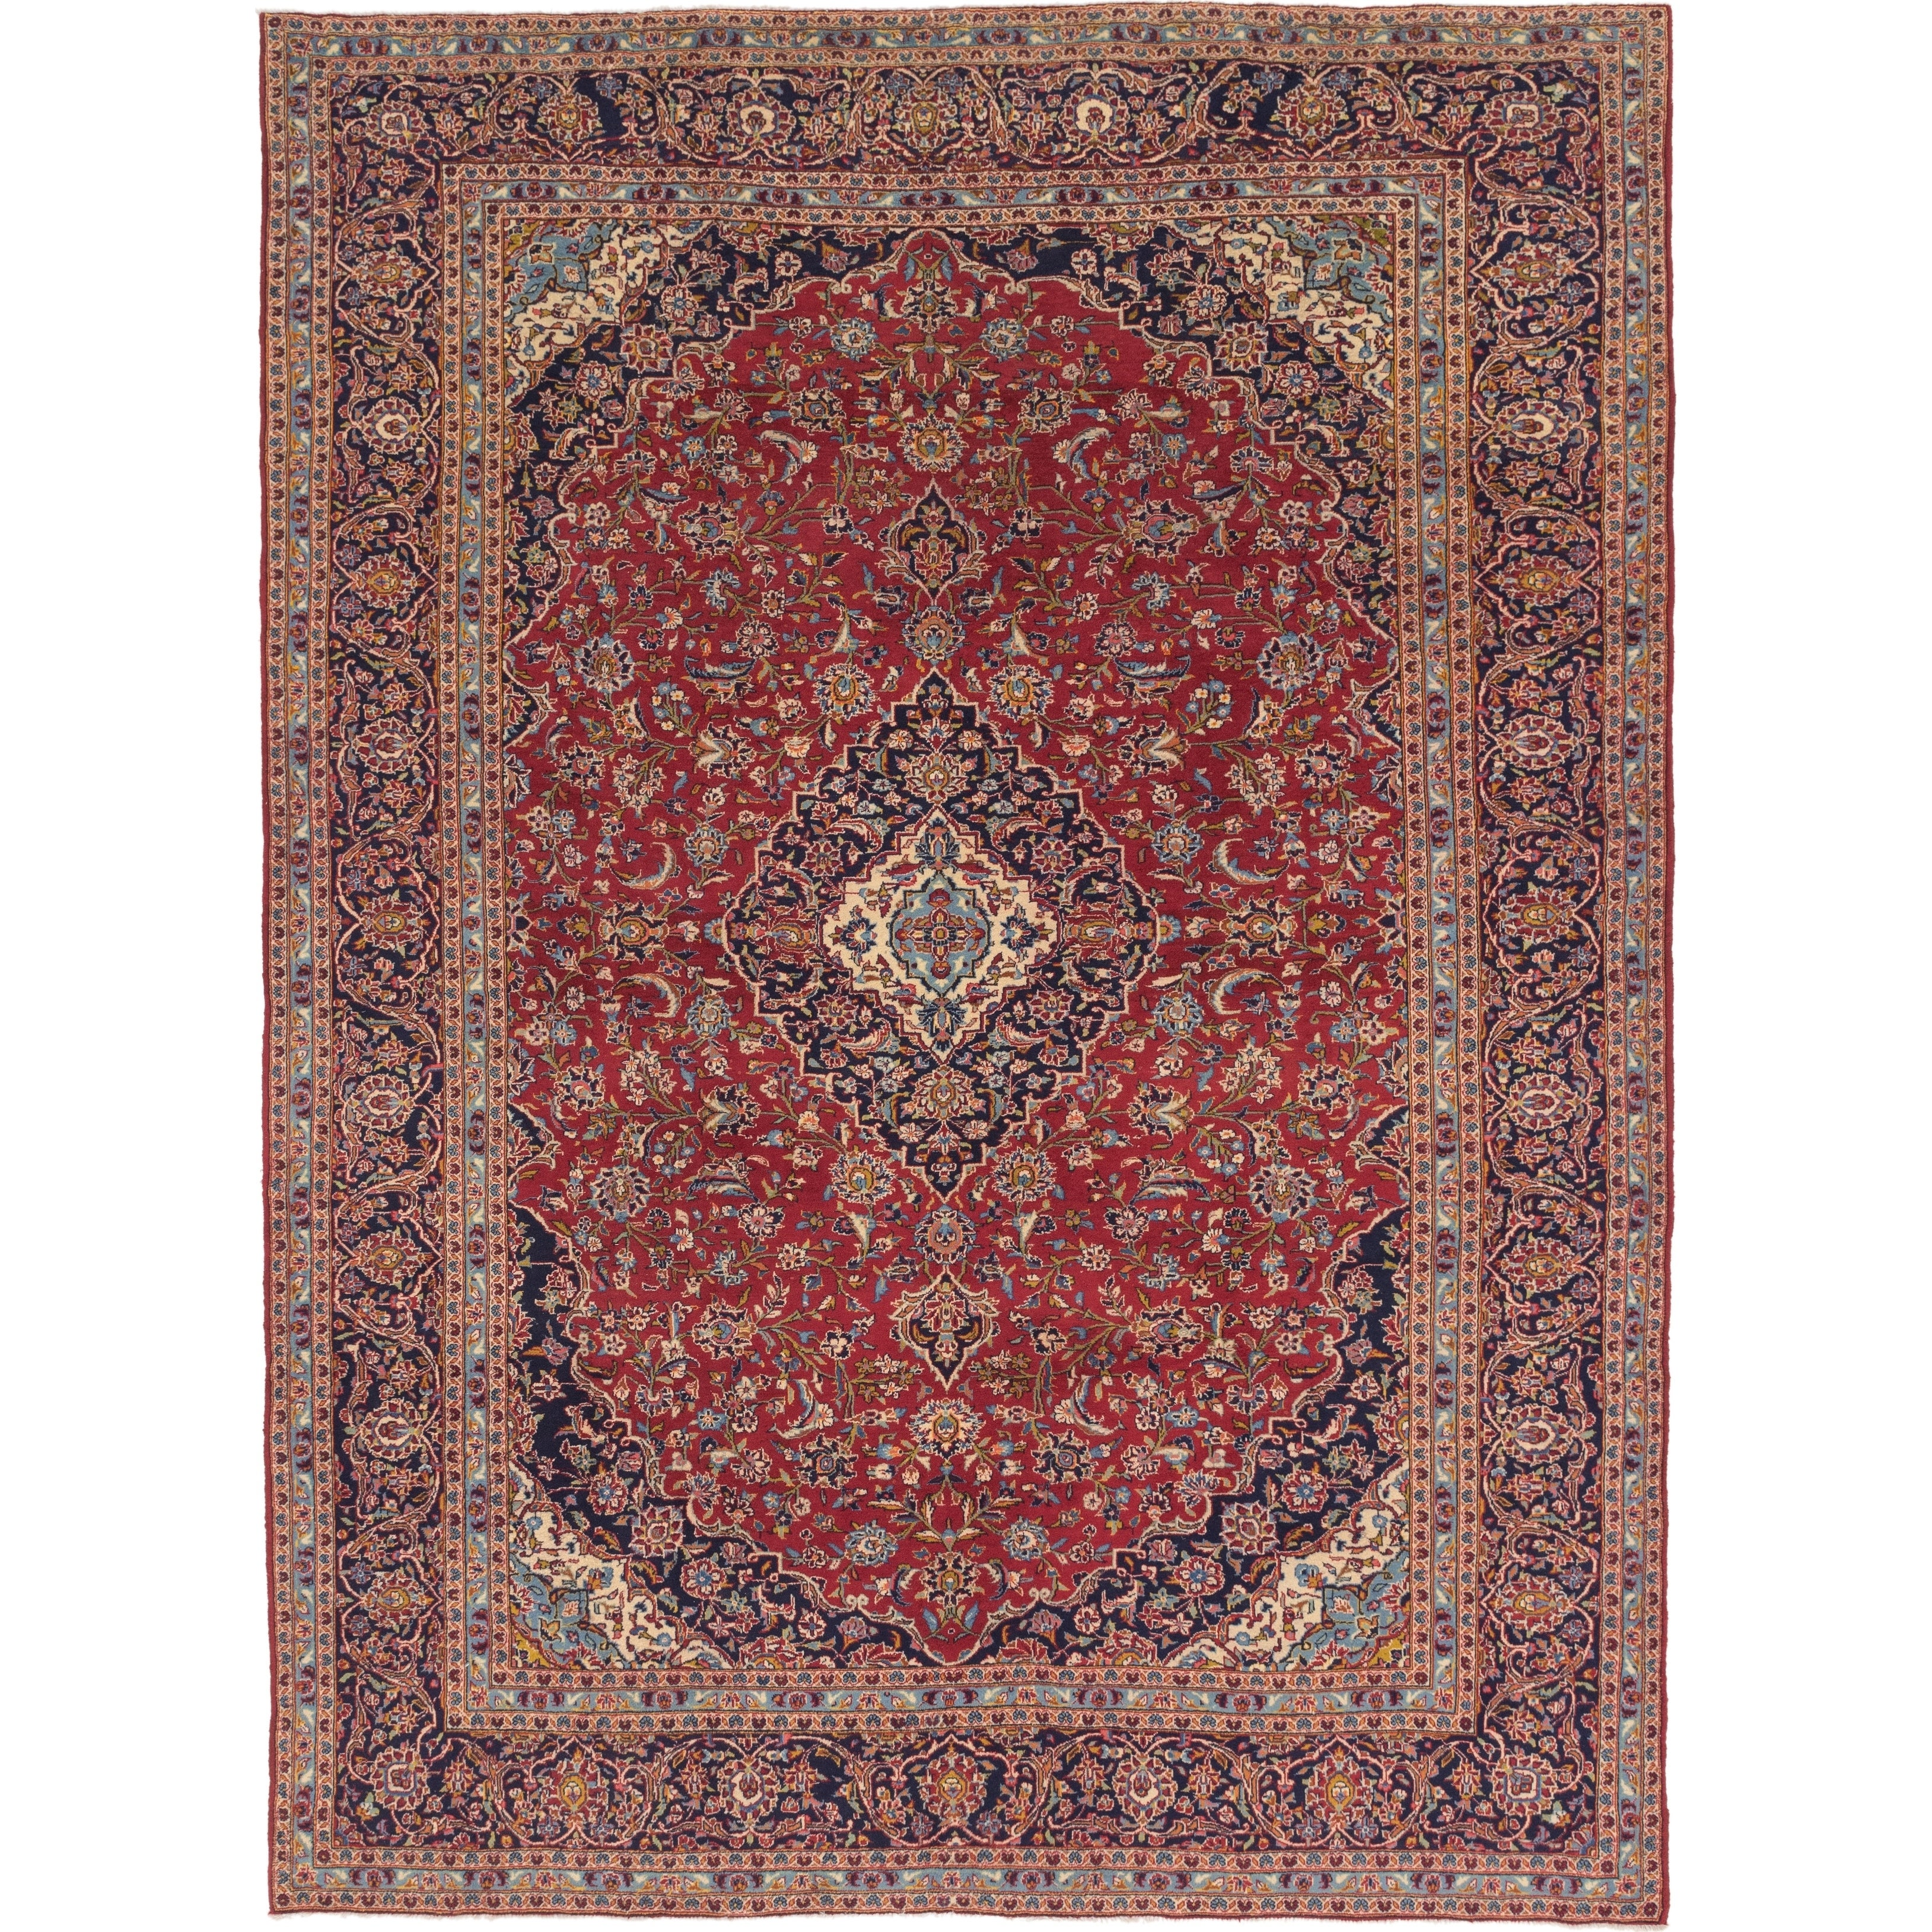 Hand Knotted Kashan Wool Area Rug - 9 10 x 13 3 (Red - 9 10 x 13 3)